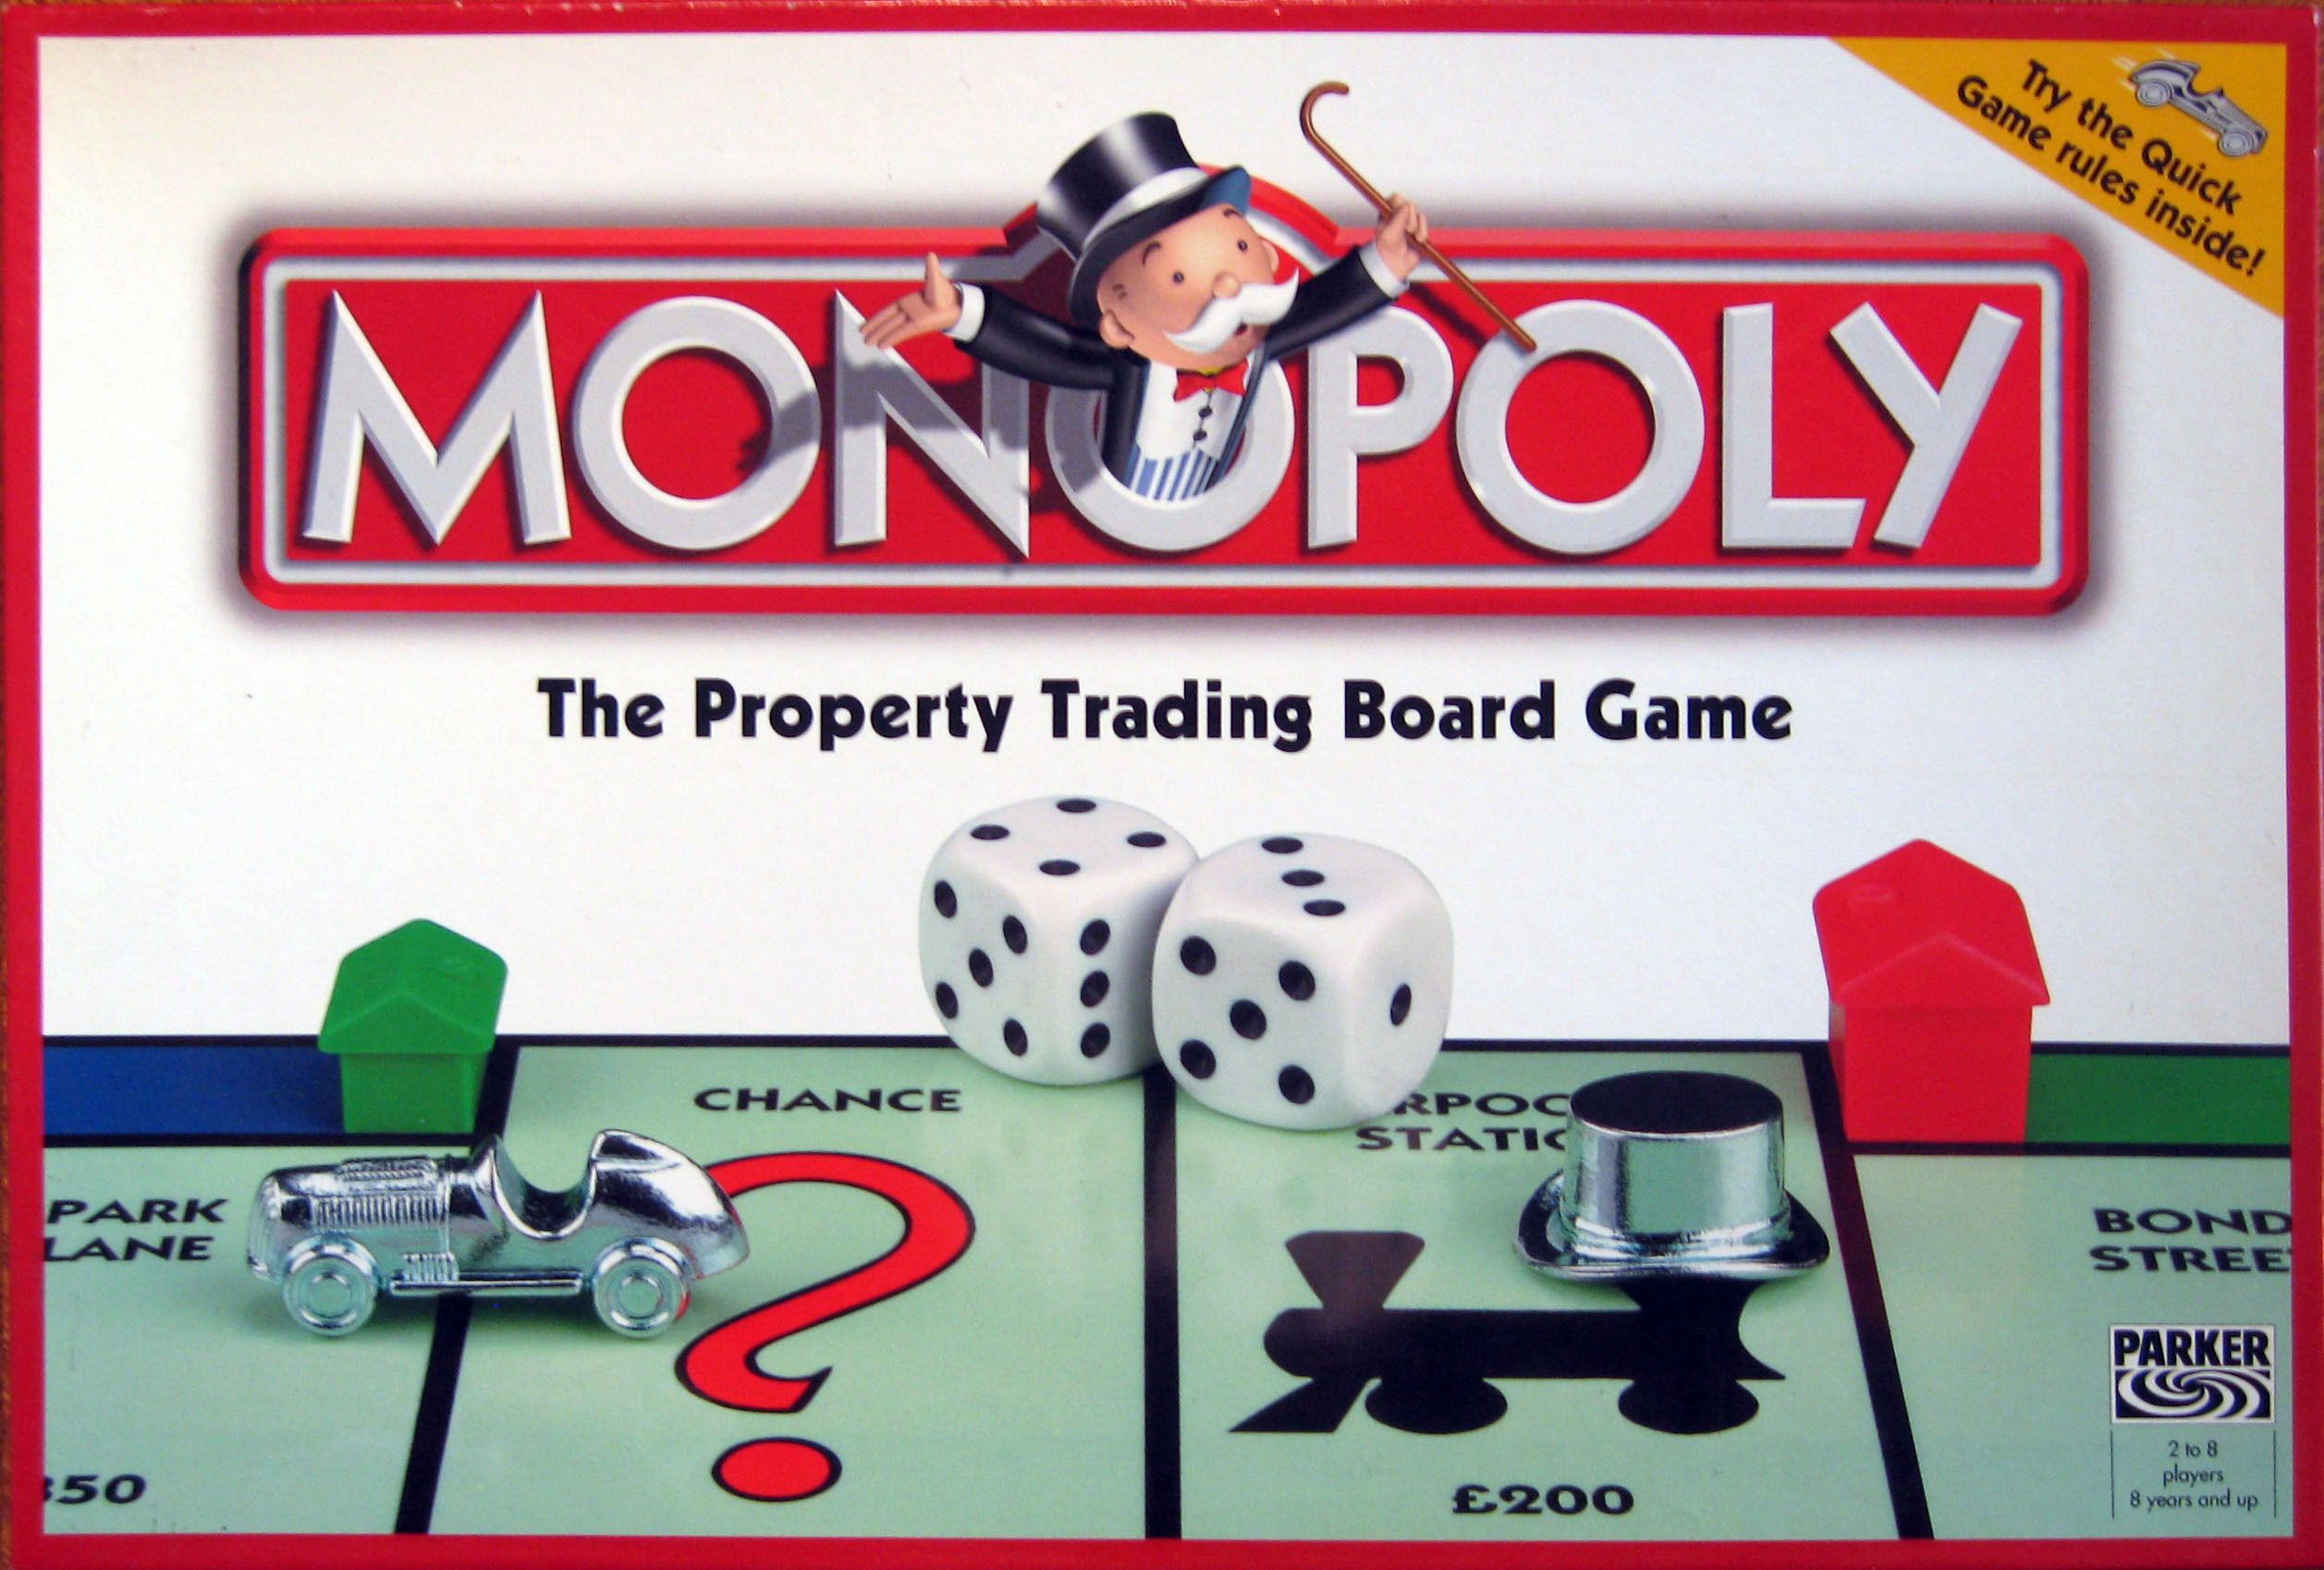 Killer tips for winning a game of Monopoly | Den of Geek | Monopoly ...